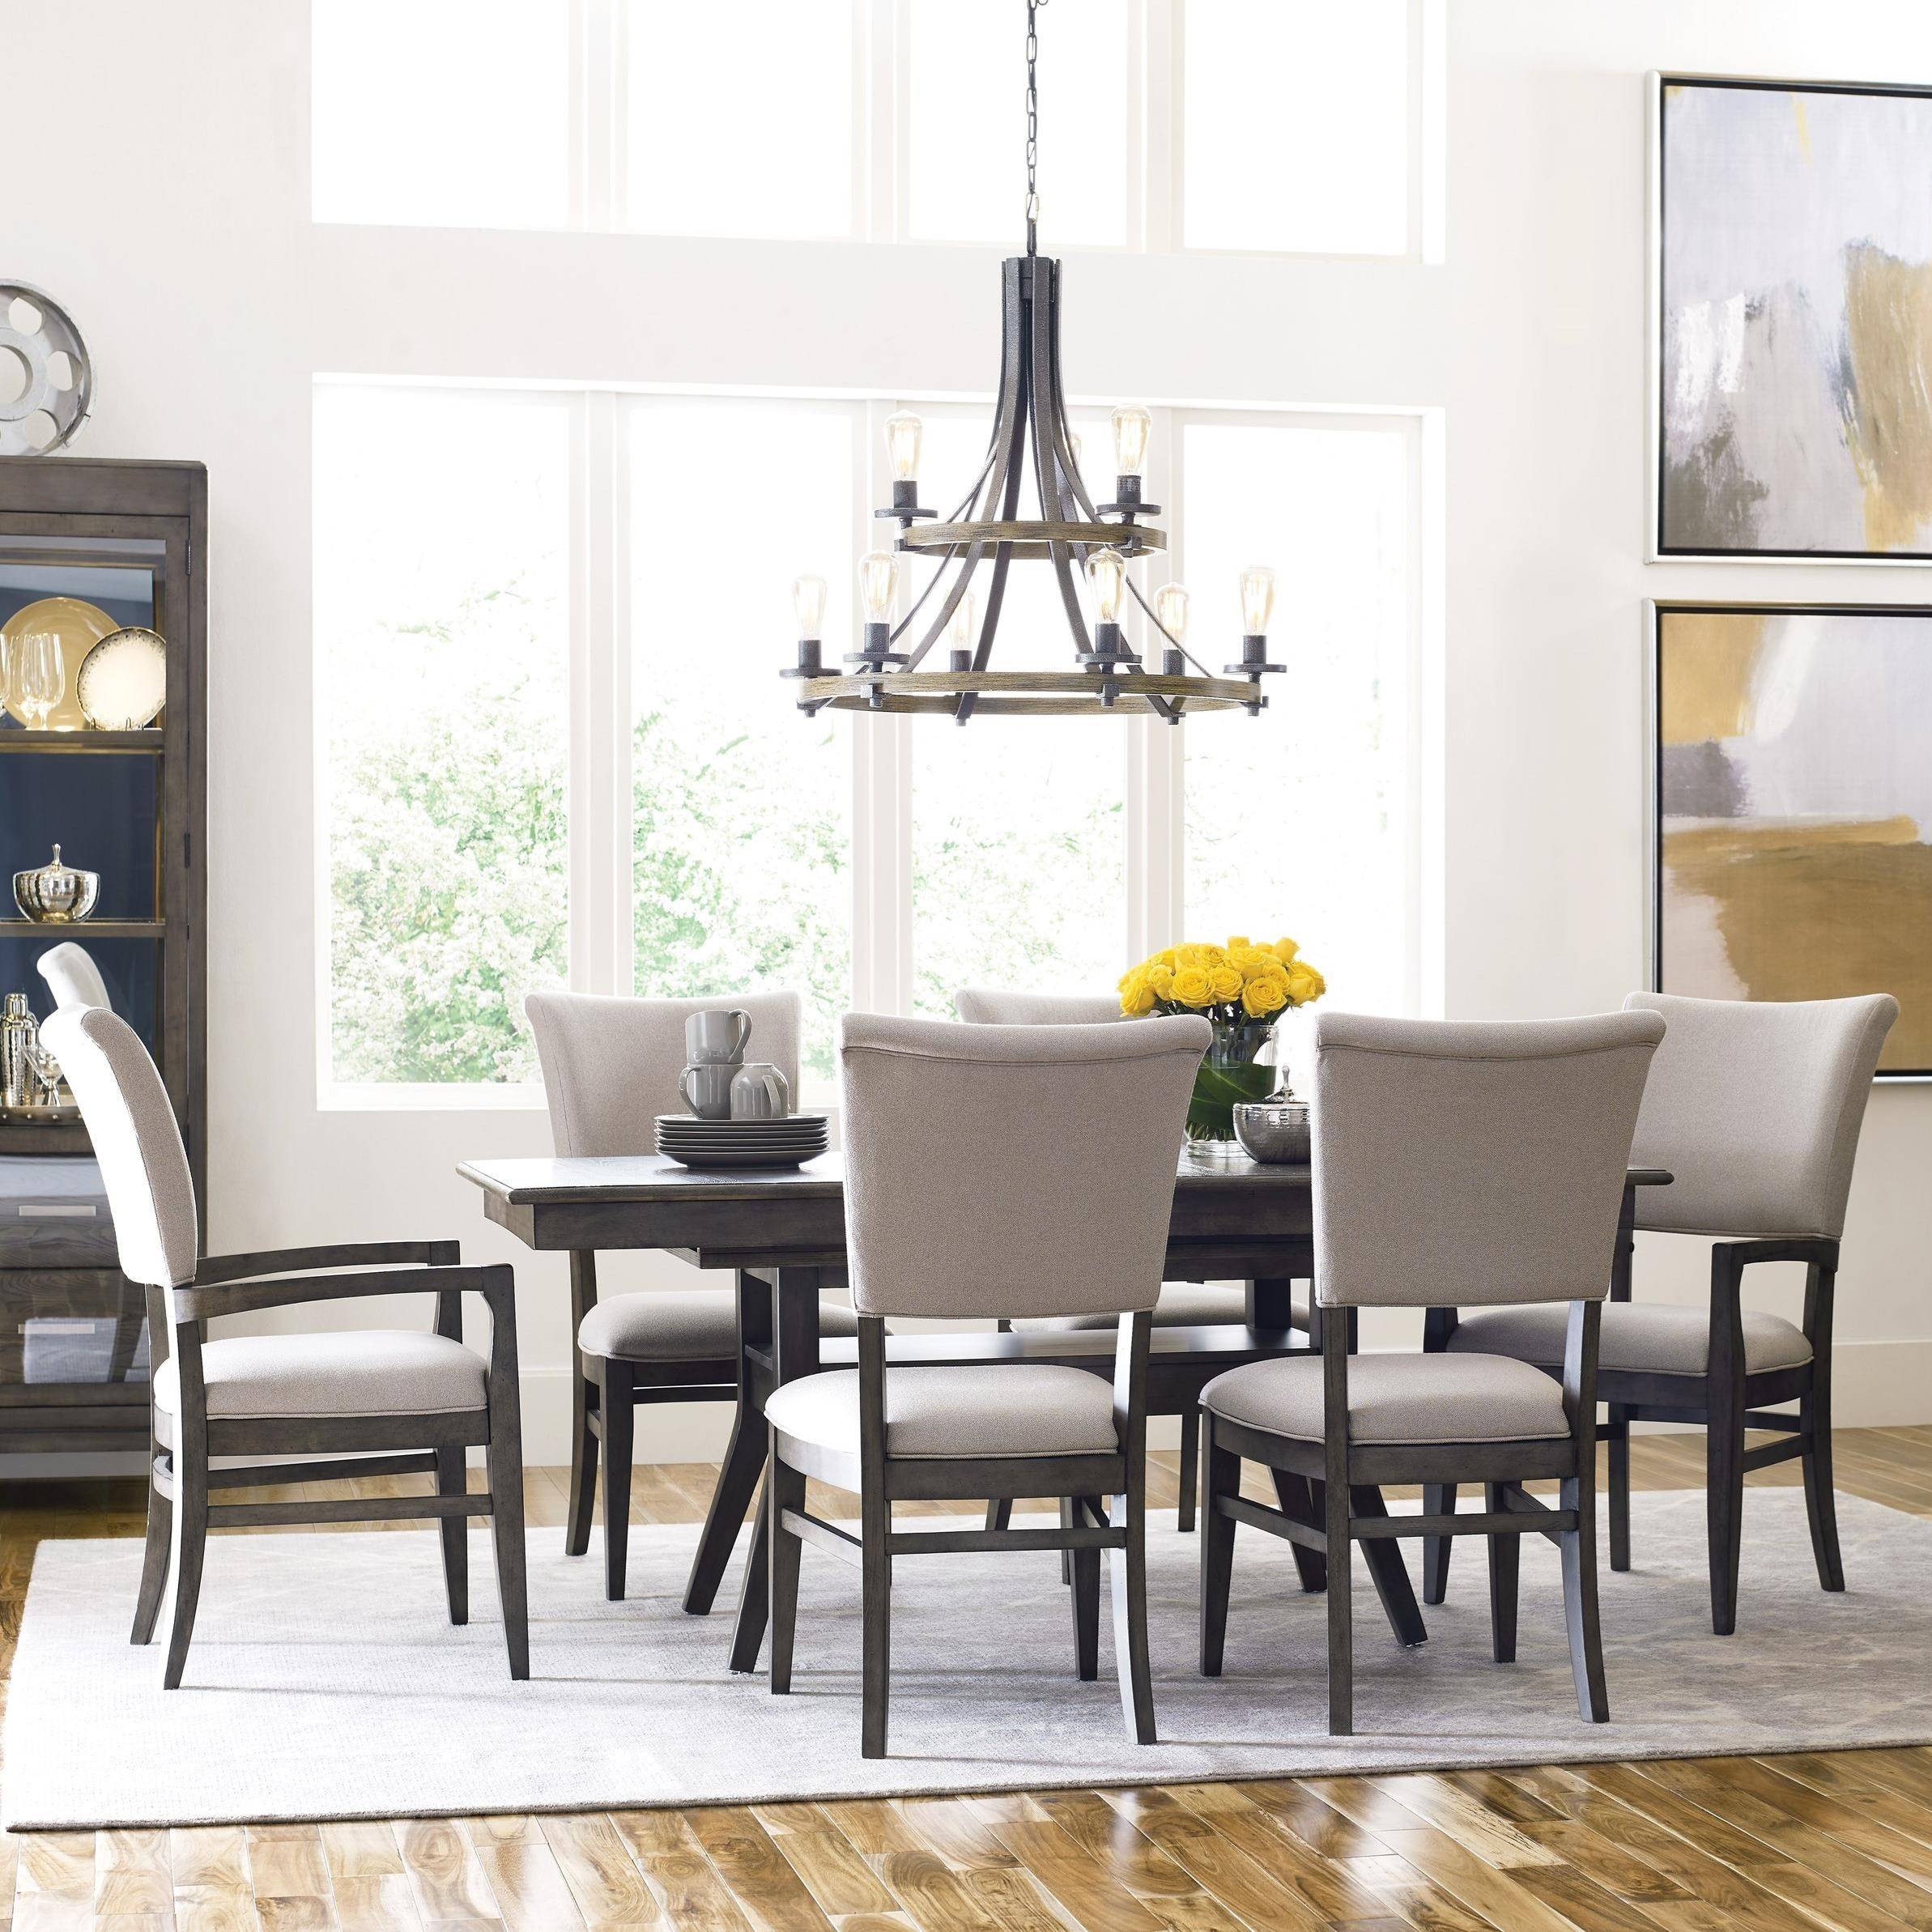 Cascade Dining Table Set with 6 Chairs by Kincaid Furniture at Northeast Factory Direct